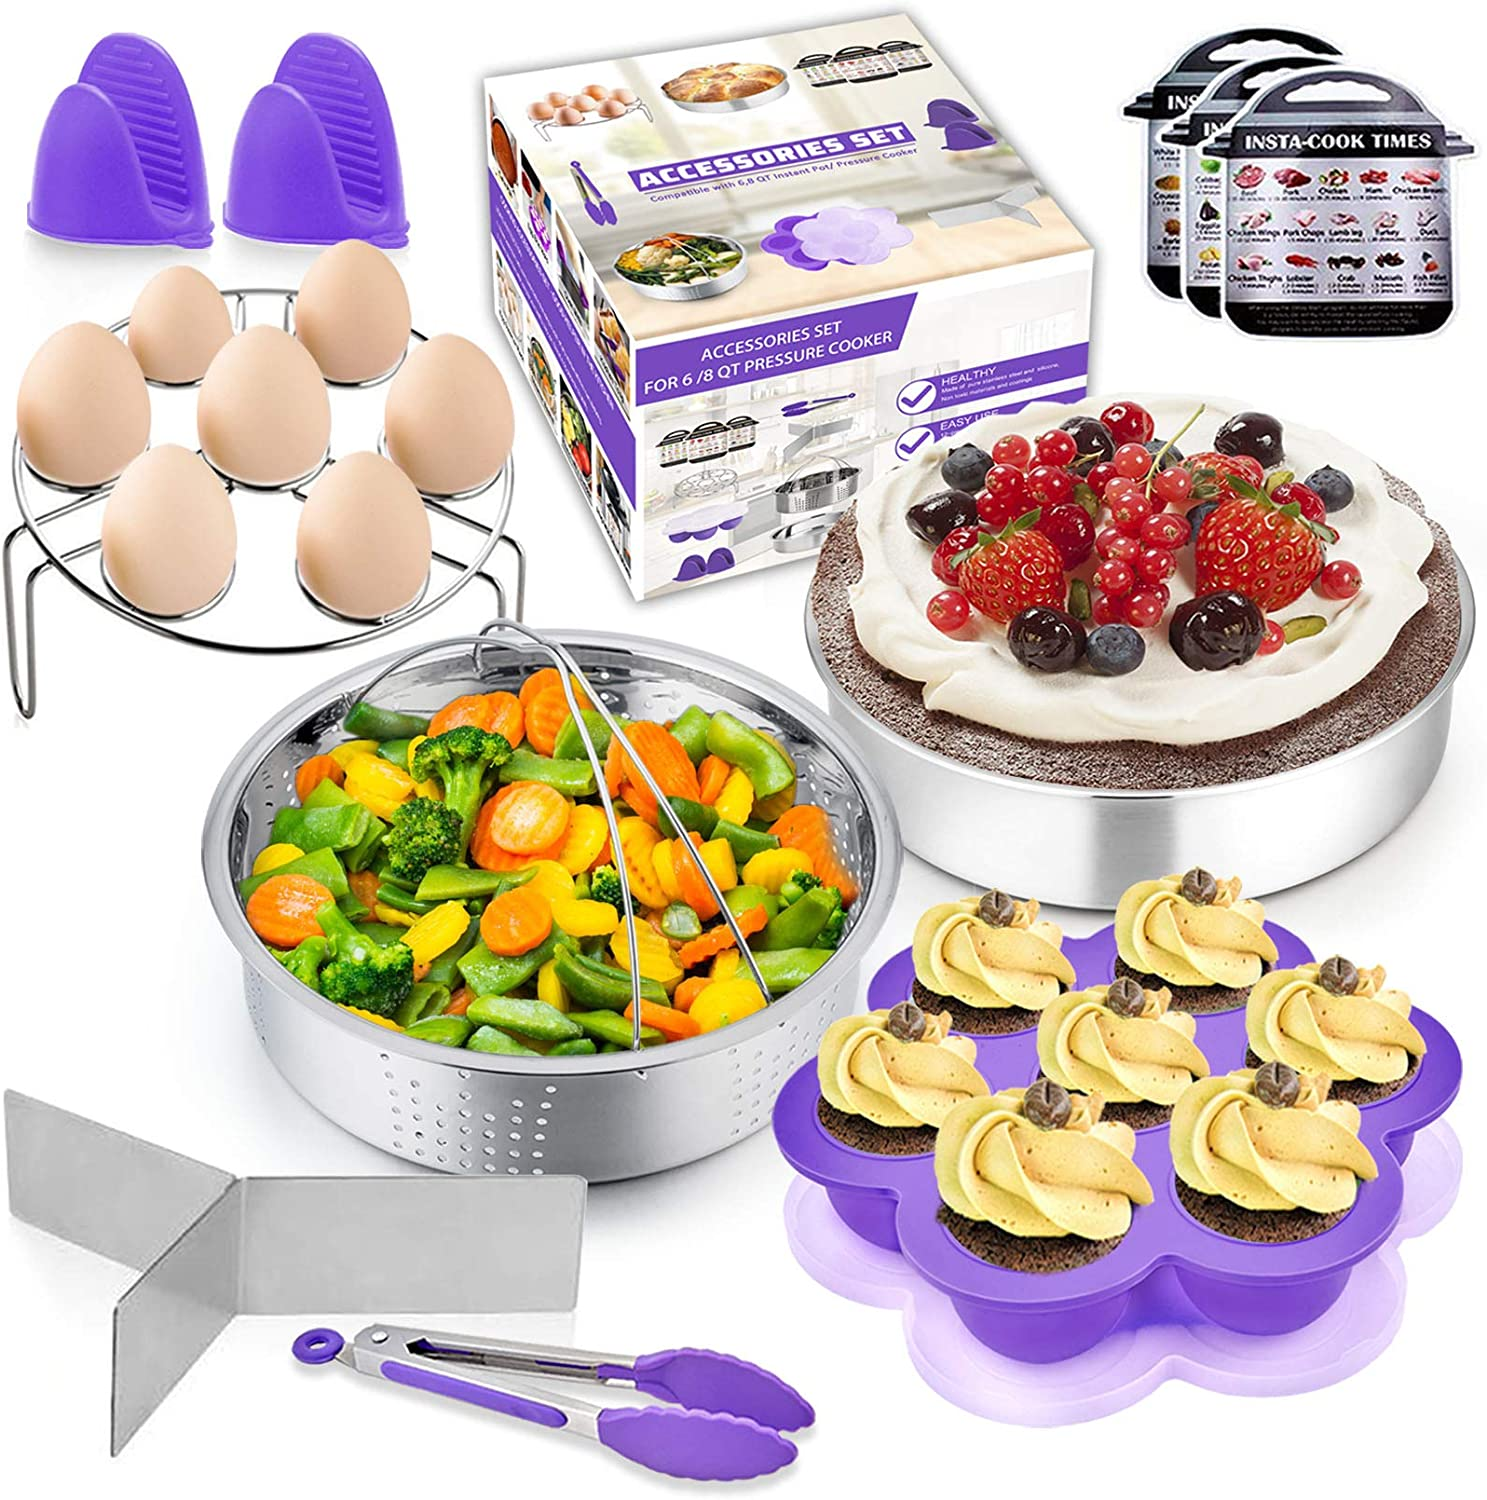 12Pcs Instant Pressure Cooker Pot Accessories Set - Purple, P&P CHEF Electric Pressure Cooker Accessory Kit, Fit 6/ 8 Qt Pot, Steamer Basket, Cake Pan, Egg Rack, Egg Bite Mold and Kitchen Tools